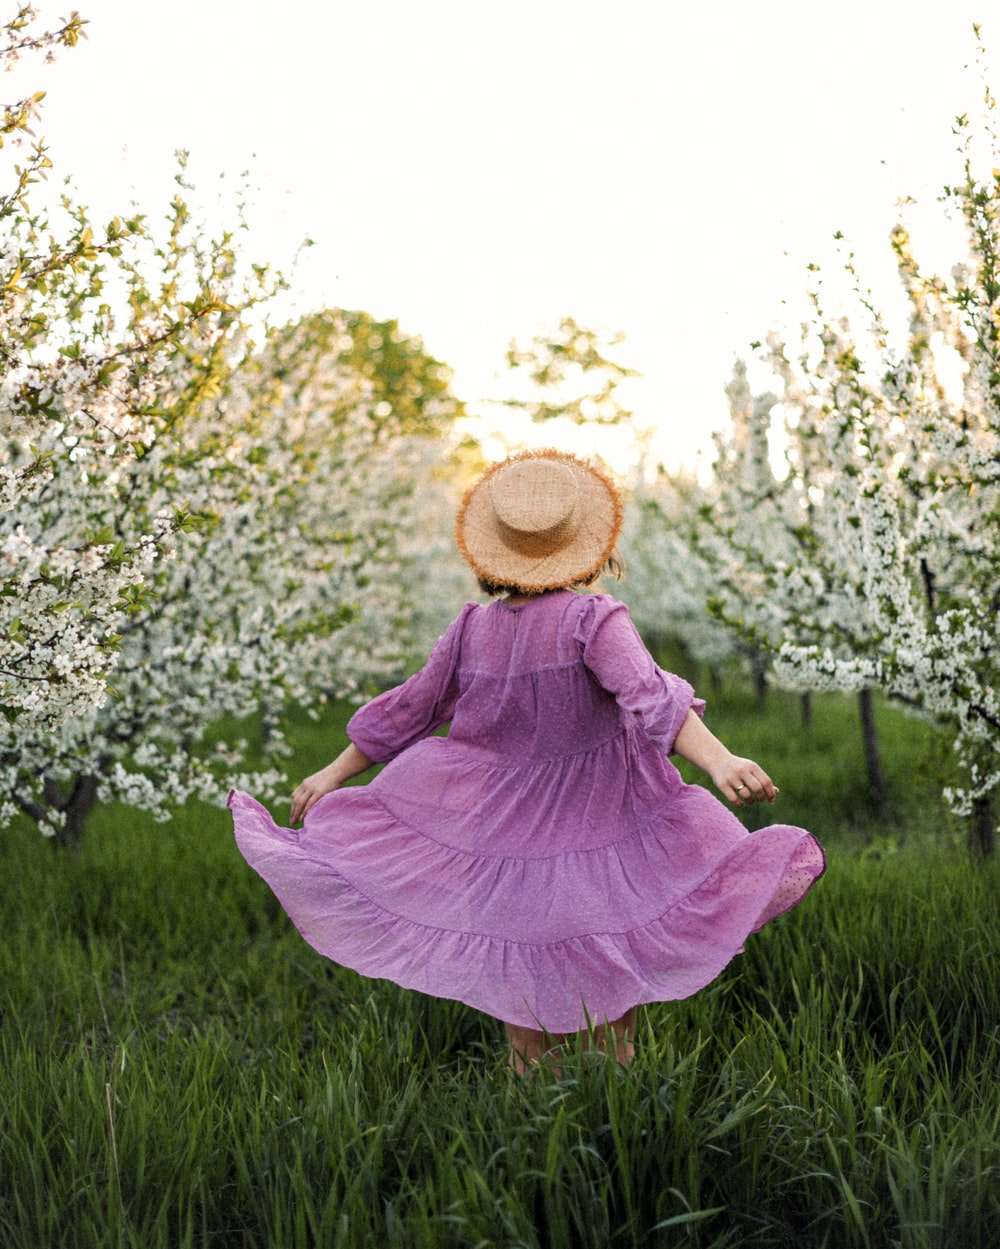 woman in pink dress and brown sun hat sitting on green grass field during daytime